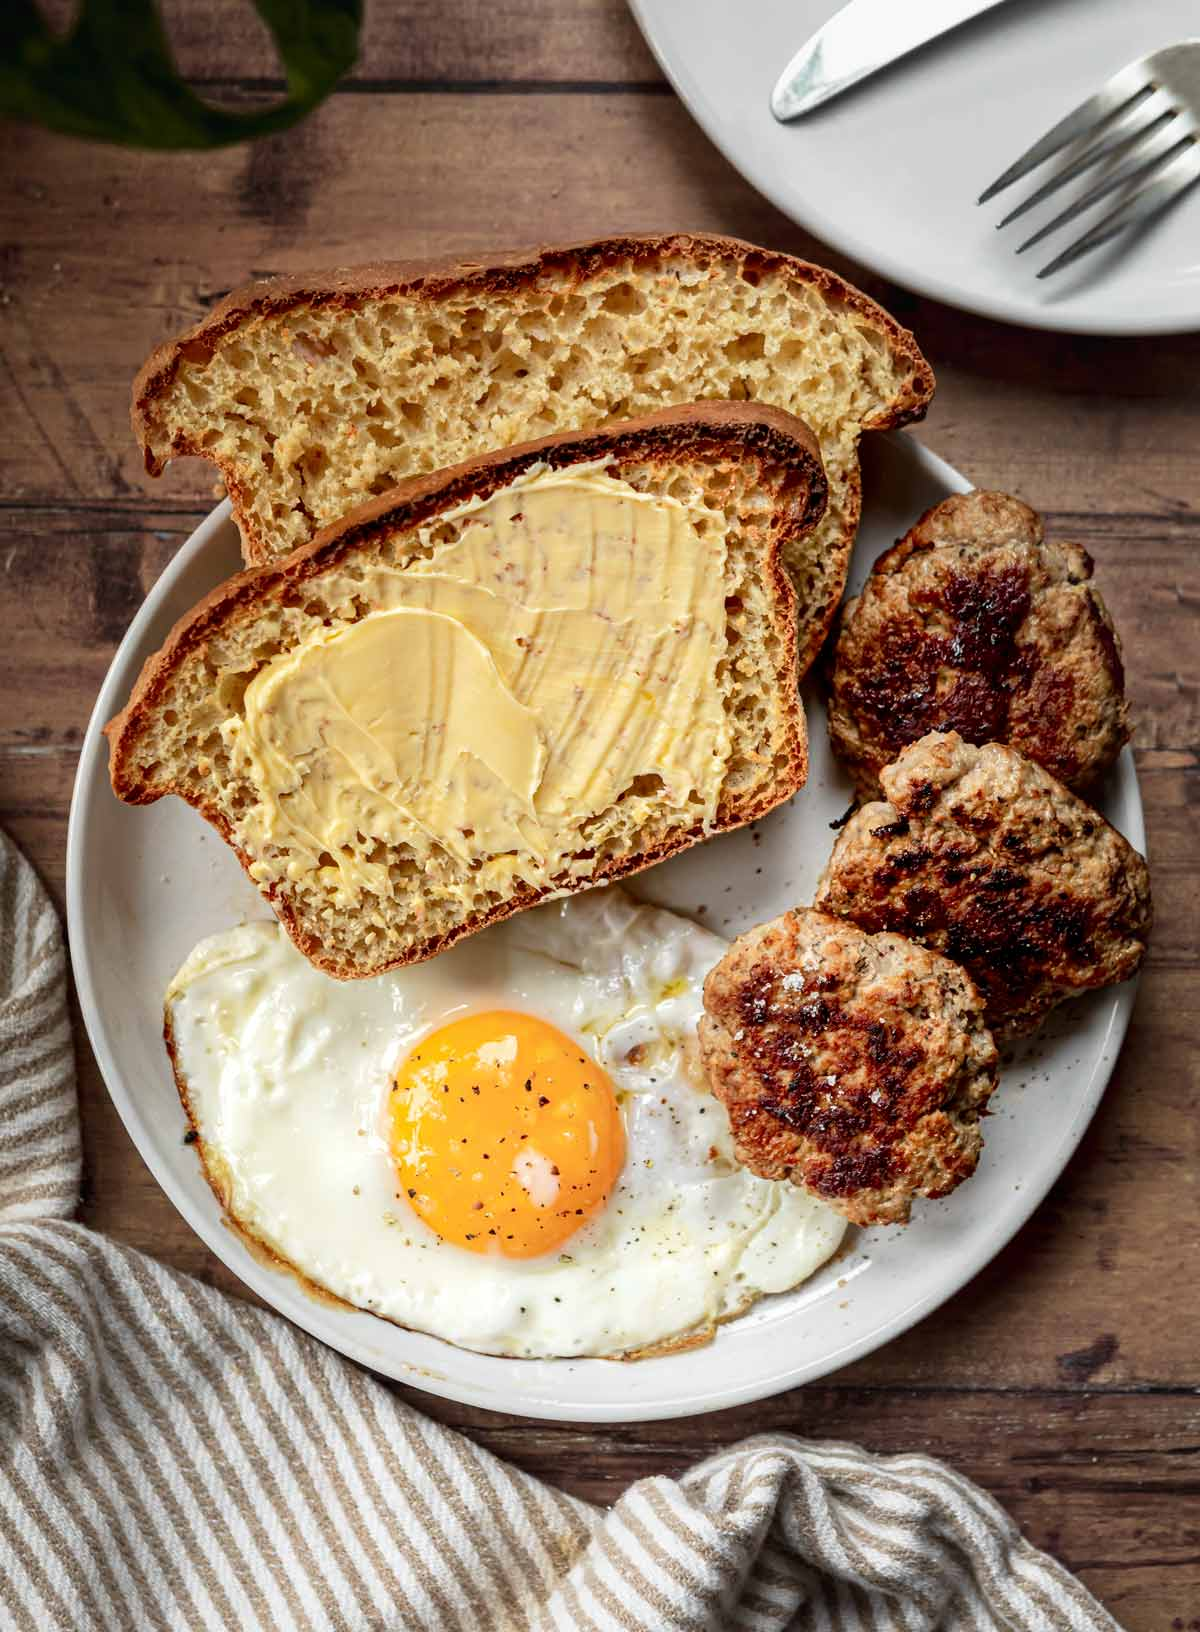 English Muffin Bread slices on plate with butter and breakfast